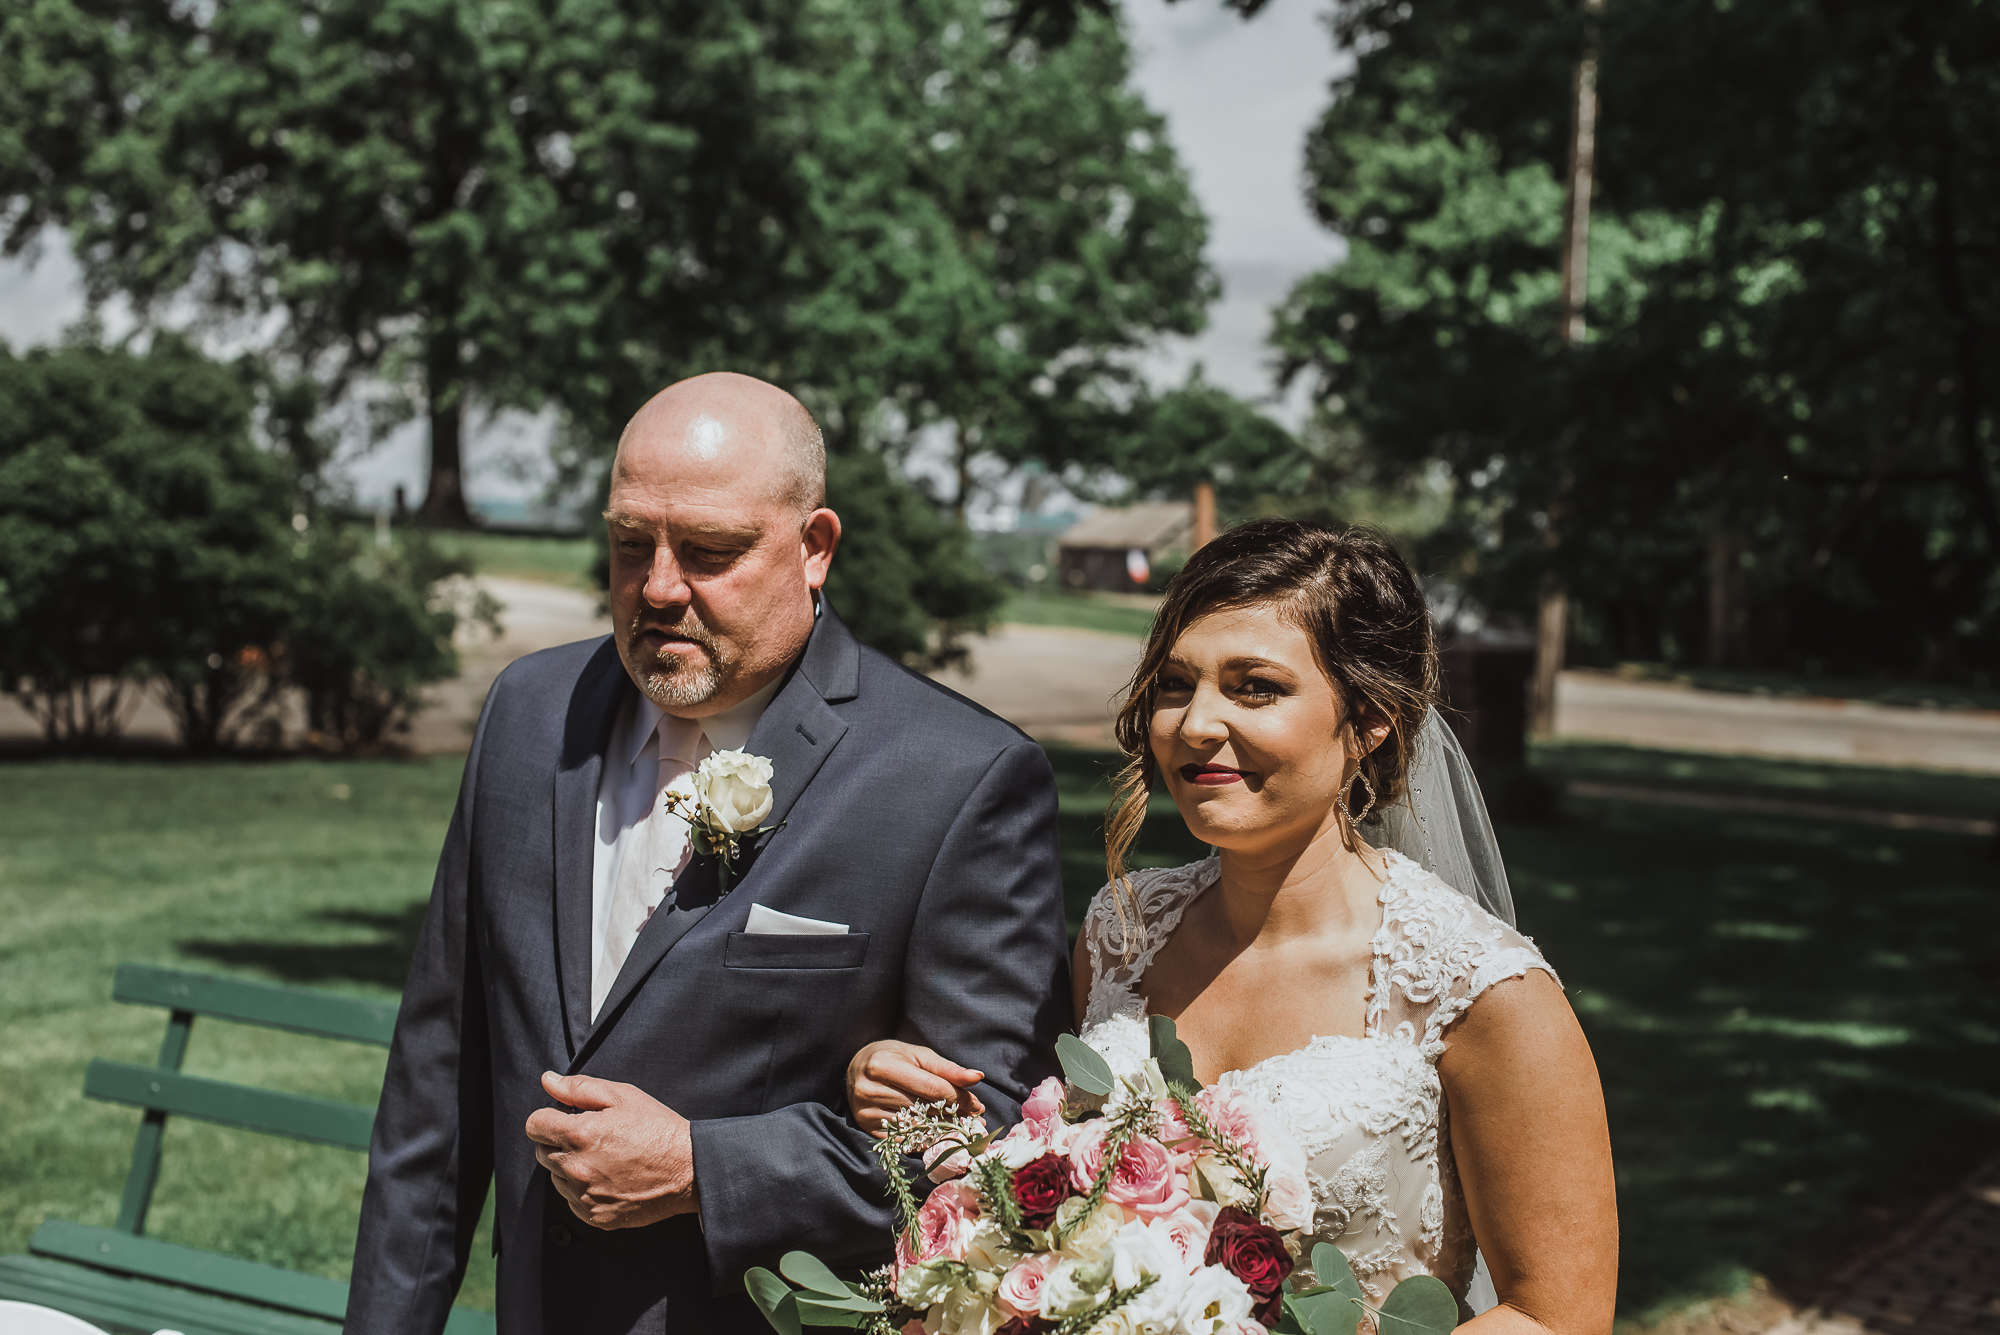 Melissa Cervantes Photography _ Kelsey + Ben Junebug Weddings Submission-49a.jpg